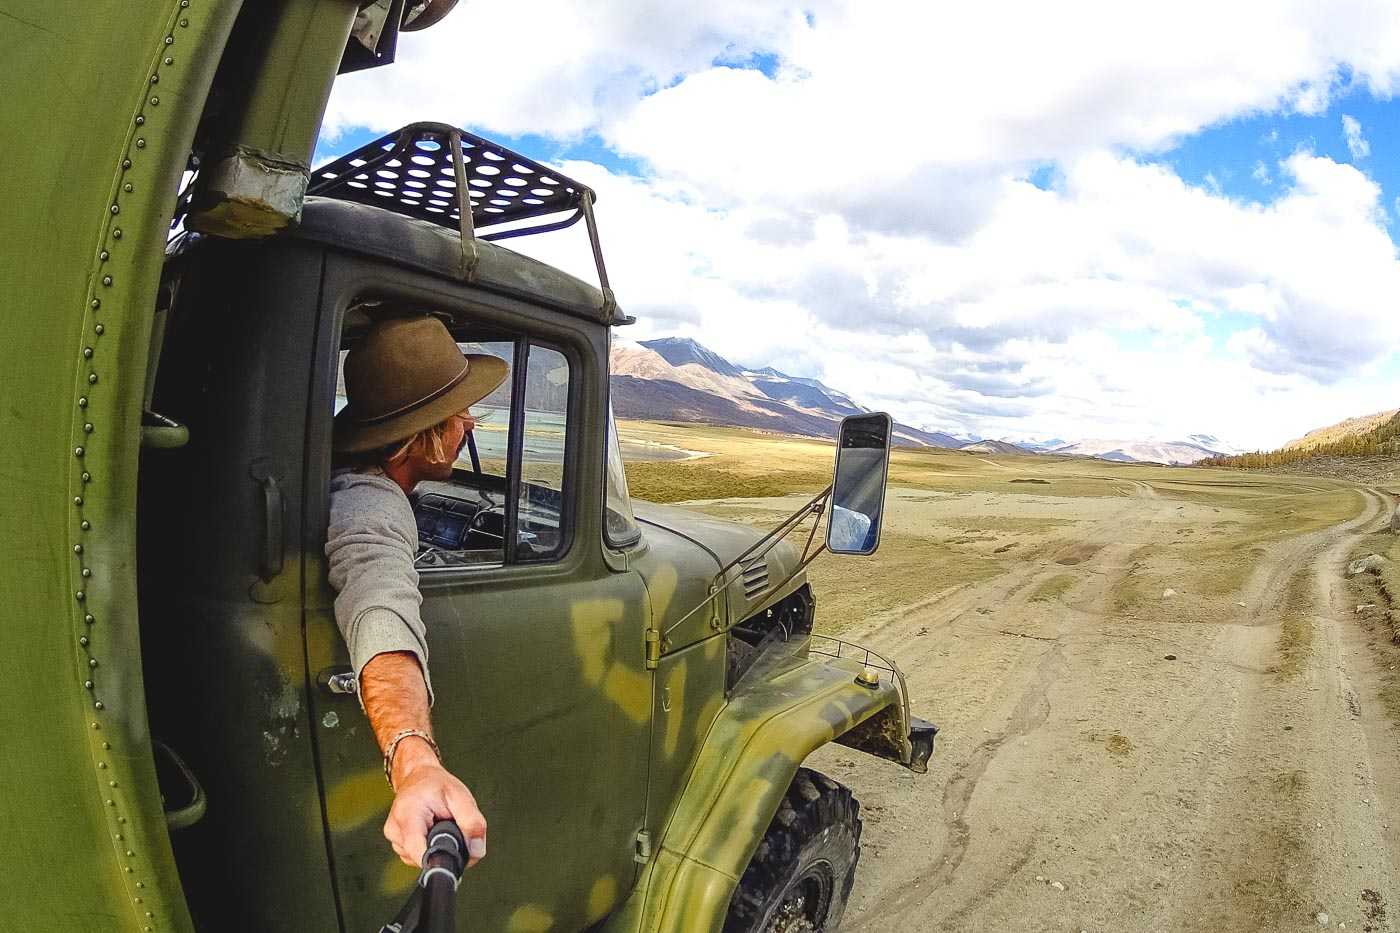 Stefan Haworth riding in an old Military truck through the Alta Mountains of Mongolia